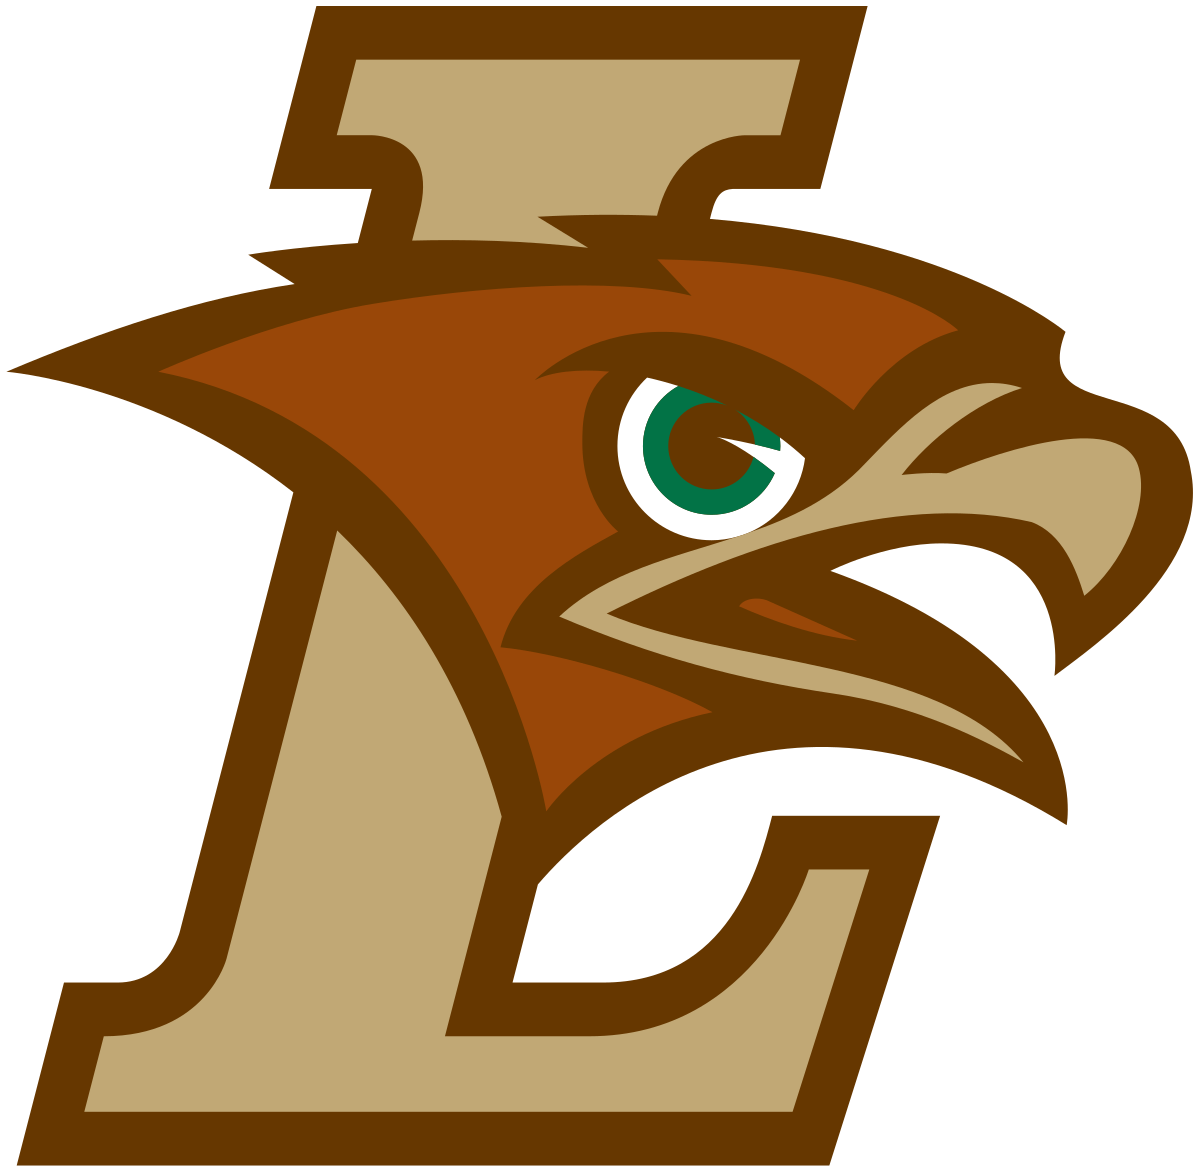 Hawk football clipart svg royalty free stock Lehigh Mountain Hawks football - Wikipedia svg royalty free stock